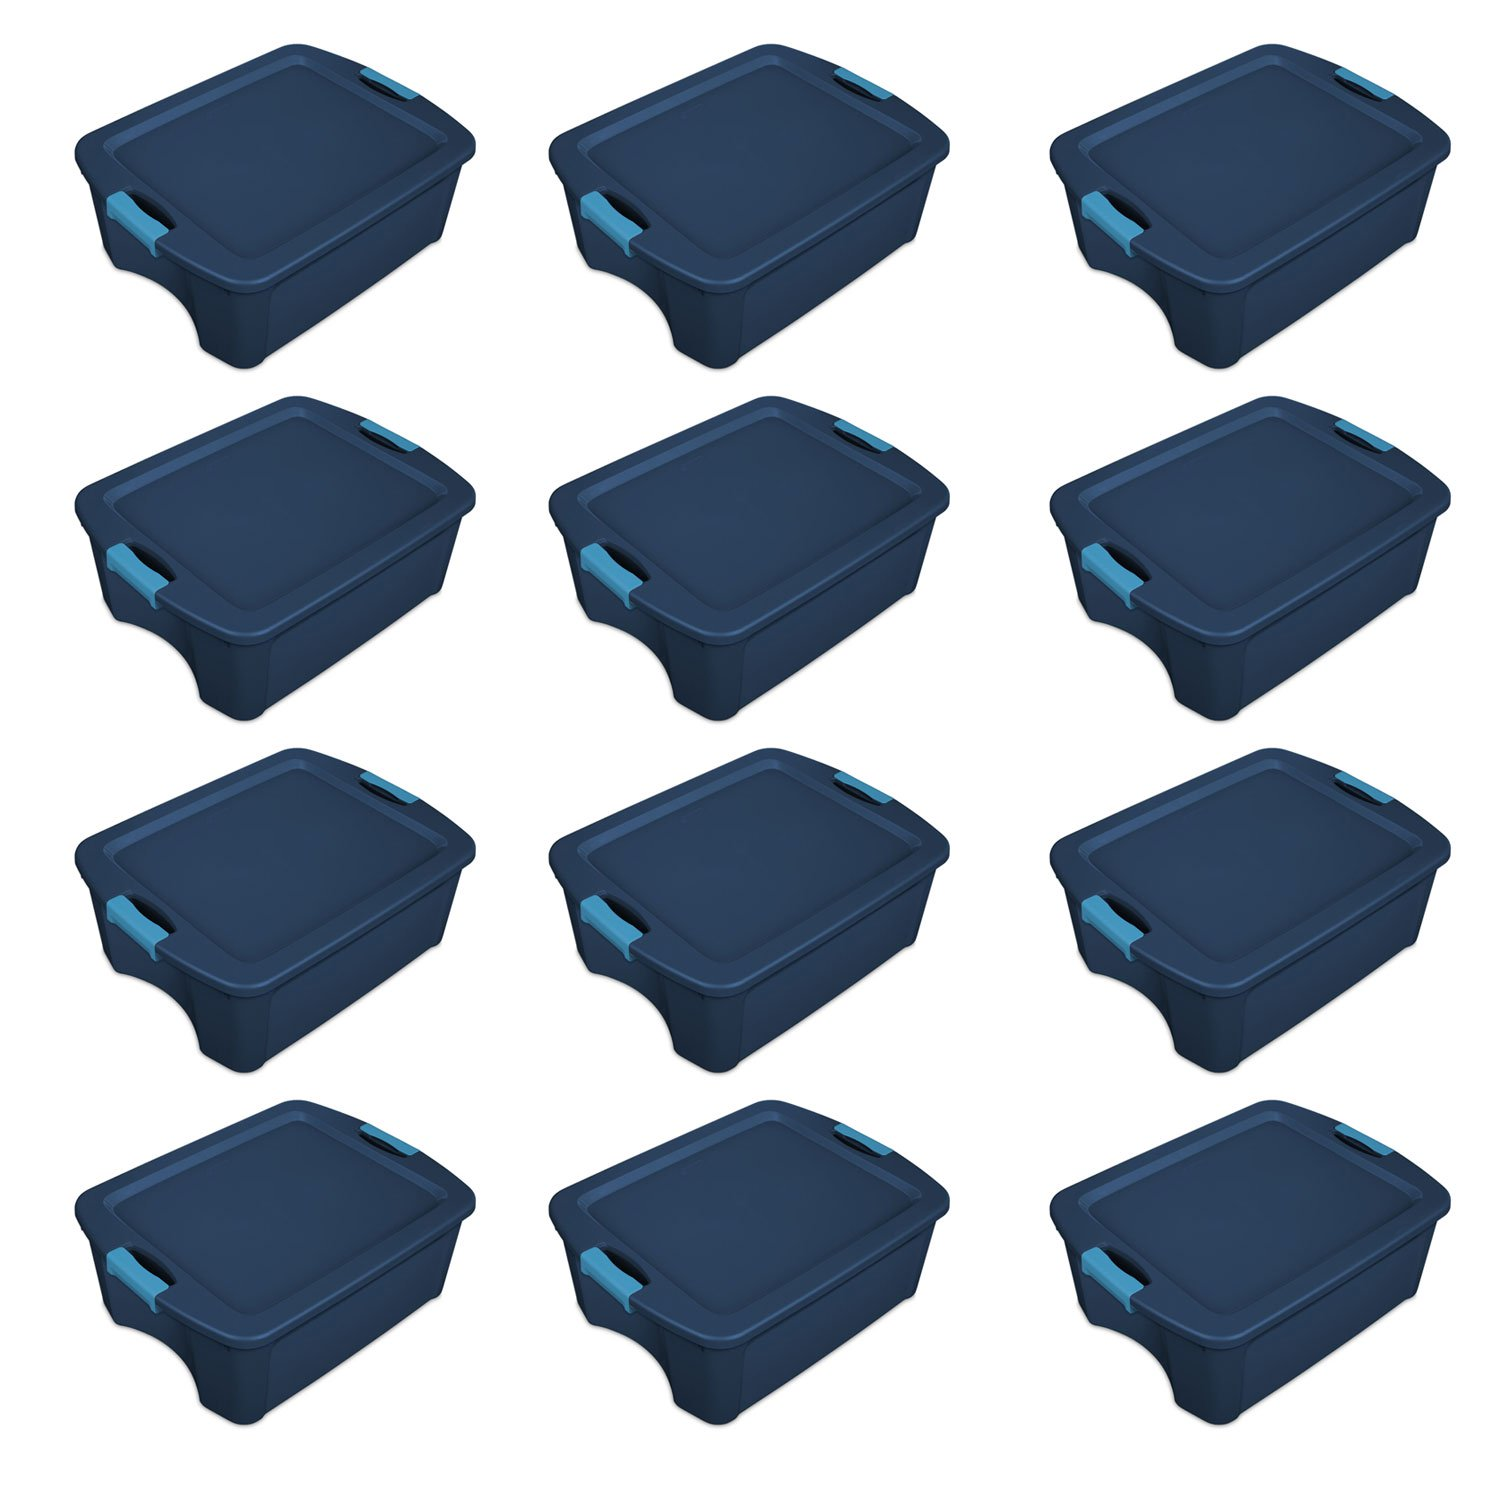 Sterilite 12 Gallon Latch and Carry Storage Tote, True Blue | 14447406 (12 Pack)